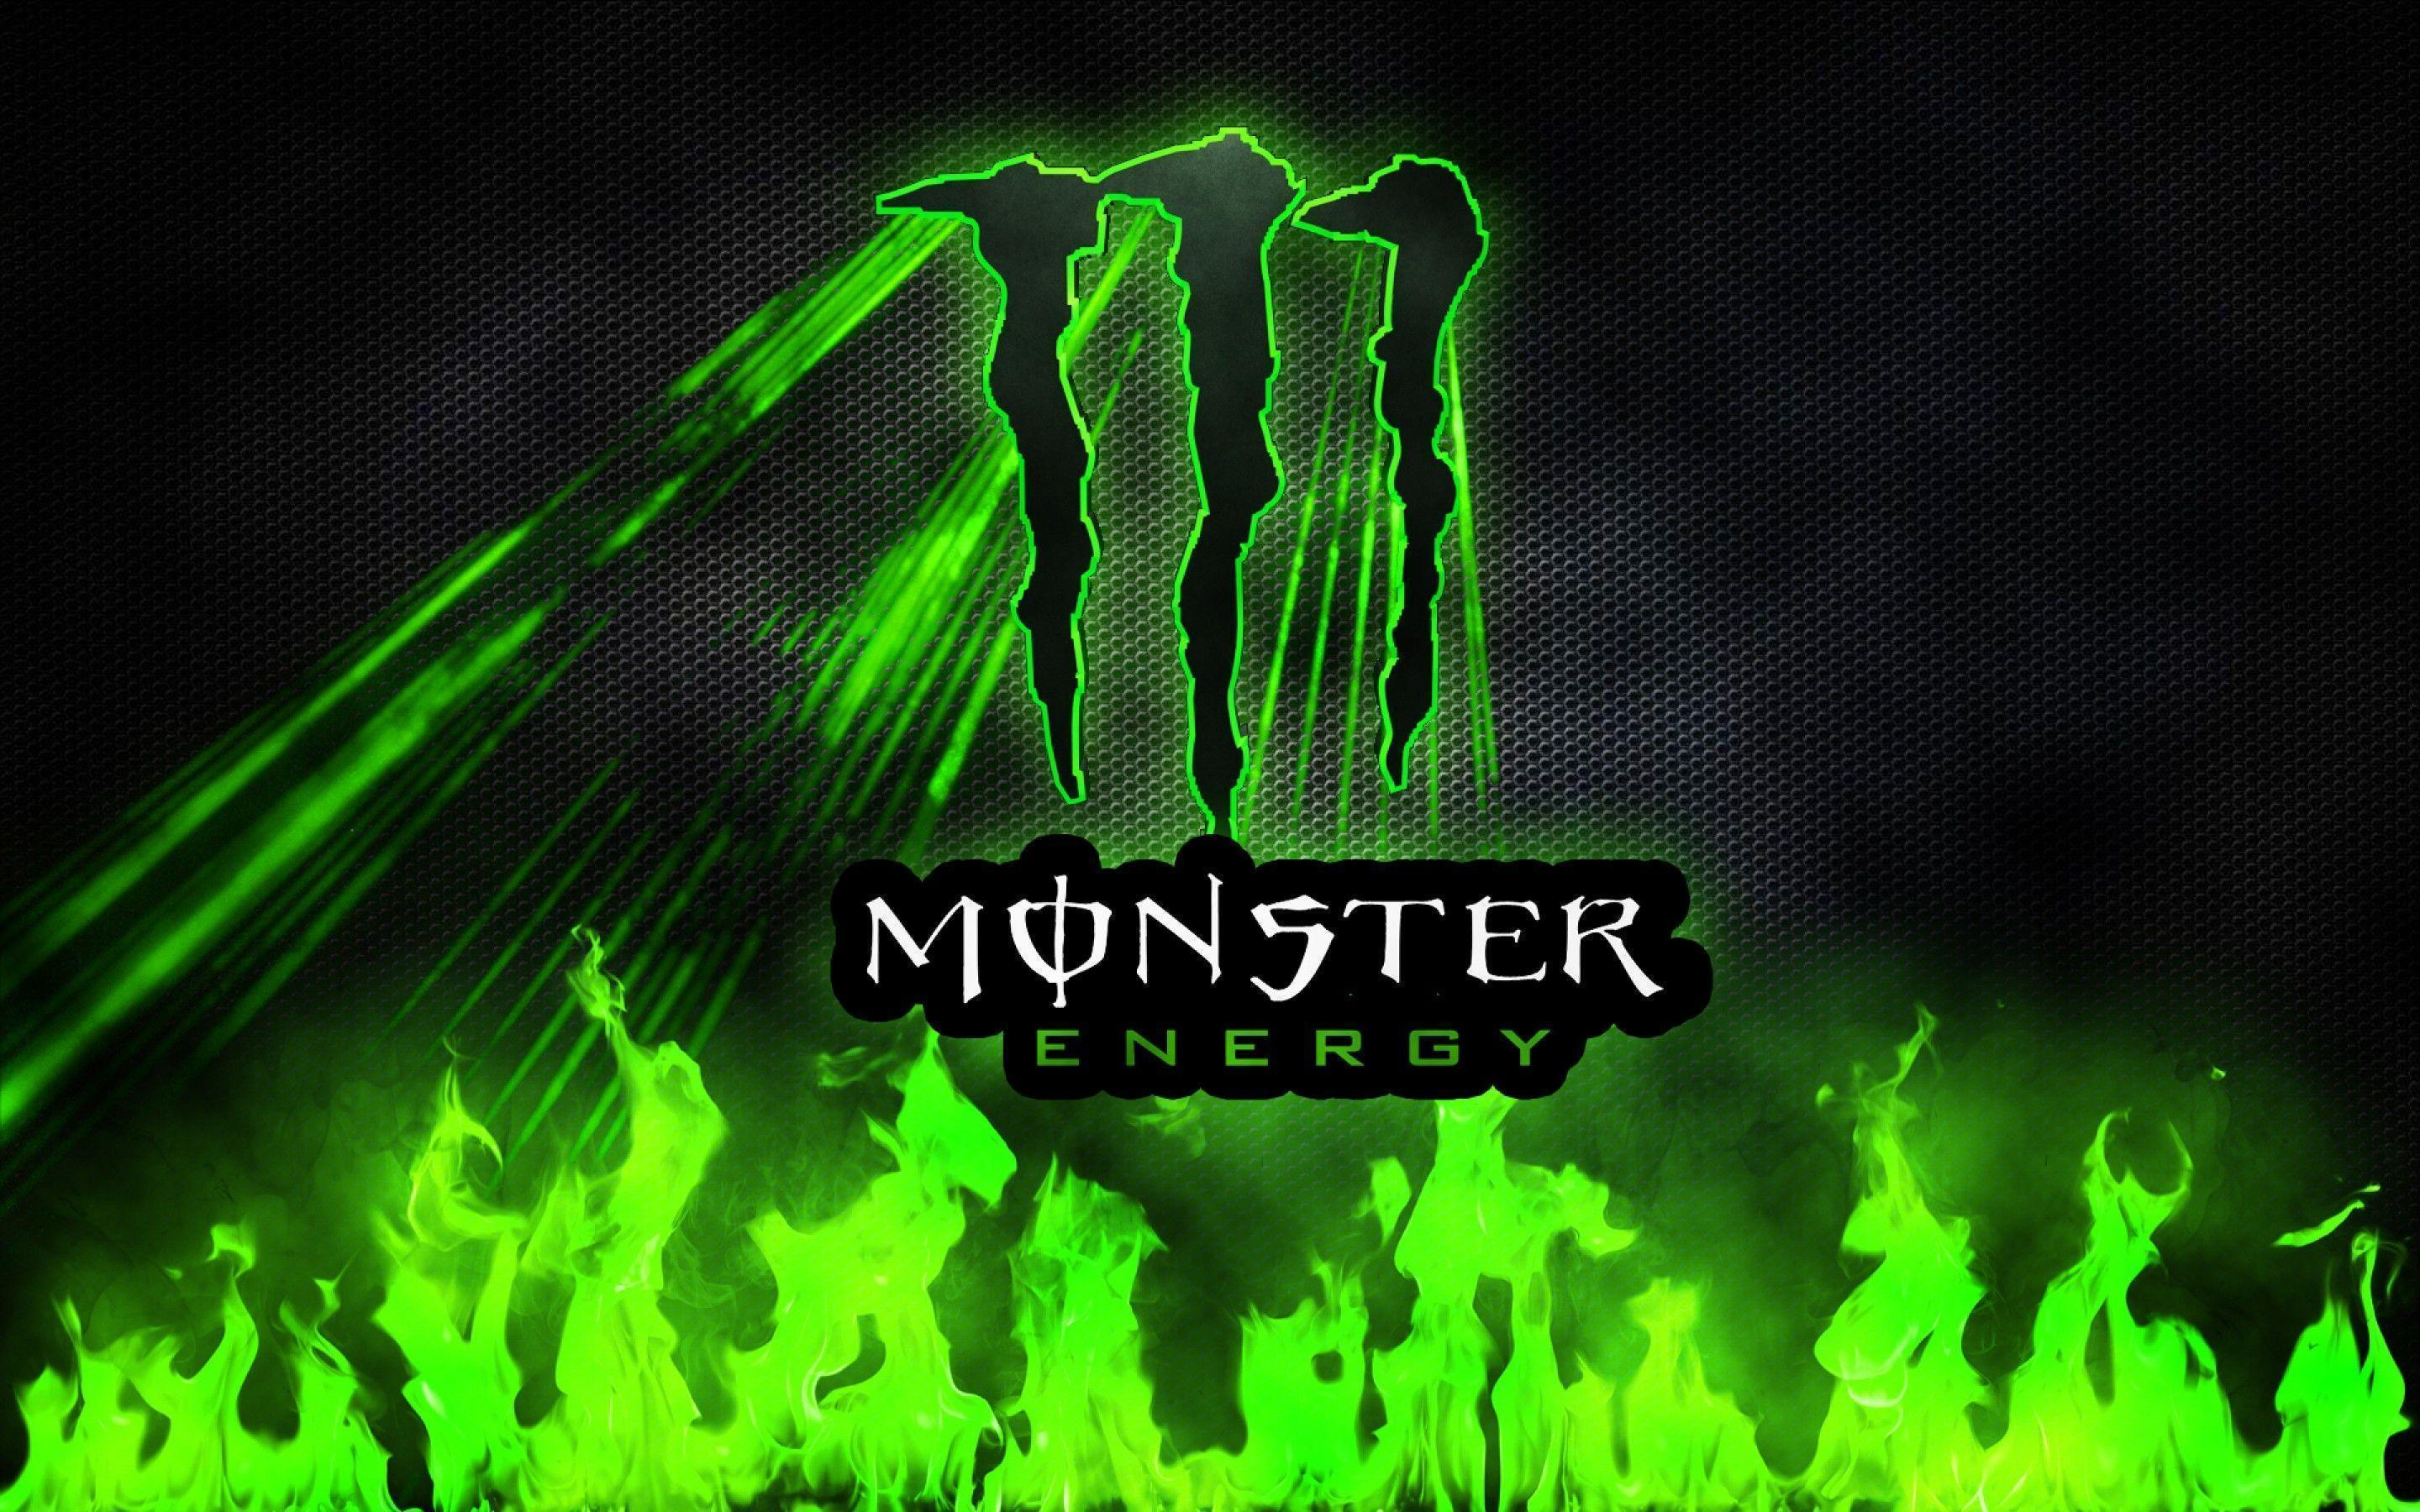 F1 Car Monster Energy Wallpaper Hd: Monster Energy Wallpapers HD 2016